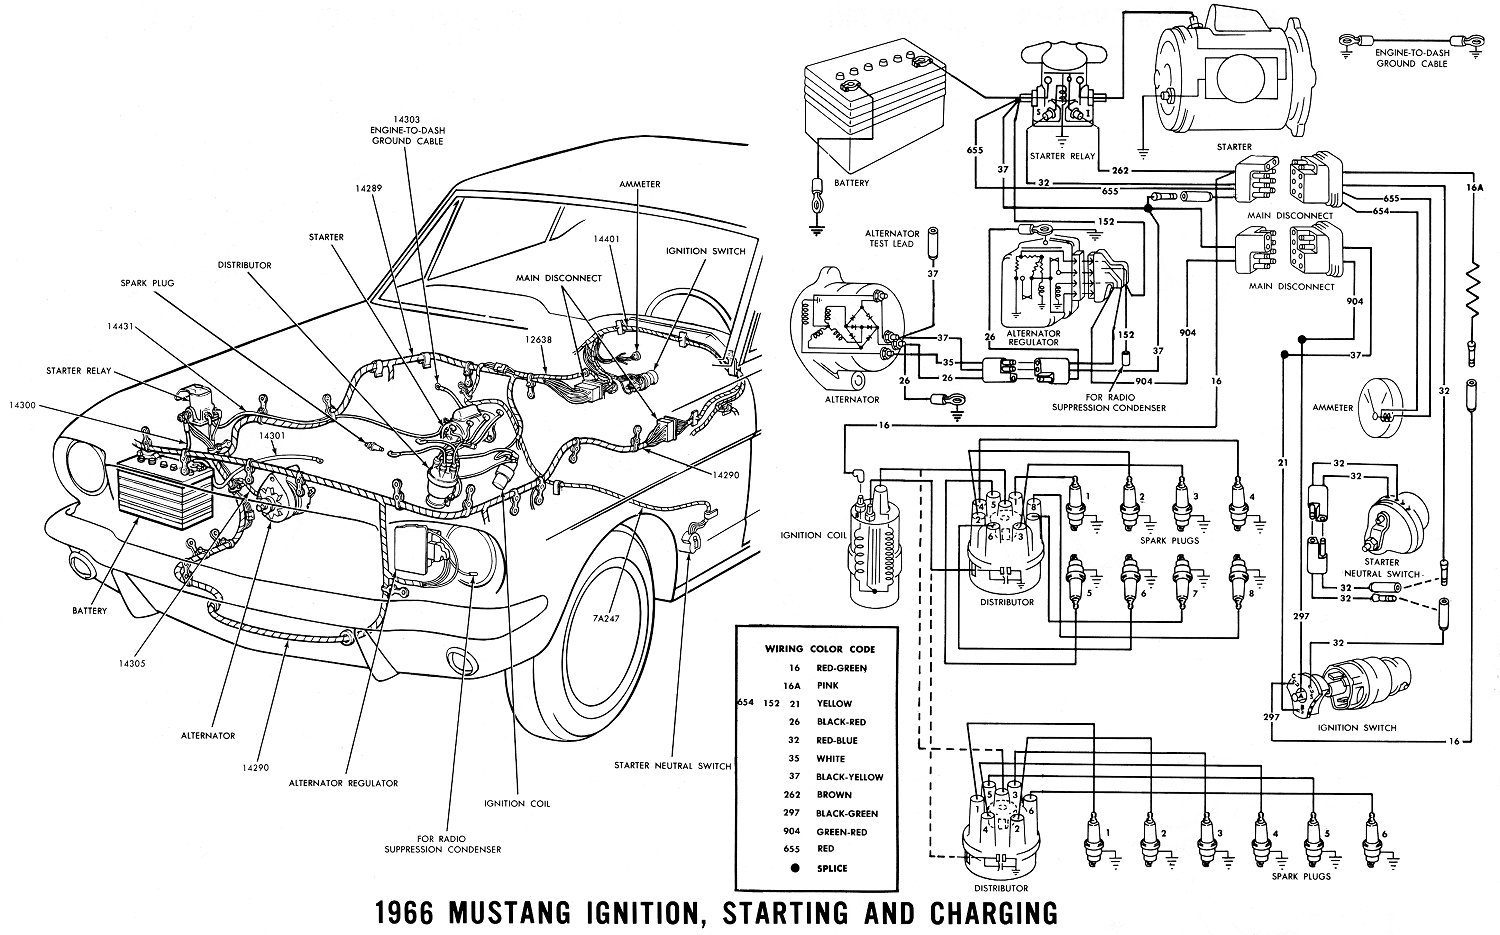 1966 Mustang Ignition Wiring Diagram together with Mazda 3 Expansion Valve Location also Vauxhall Astra Relay Location further 2005 Chevy Malibu Cooling Fan Wiring Diagram further Tbi Pcv Valve Location. on honda civic wiper motor wiring diagram